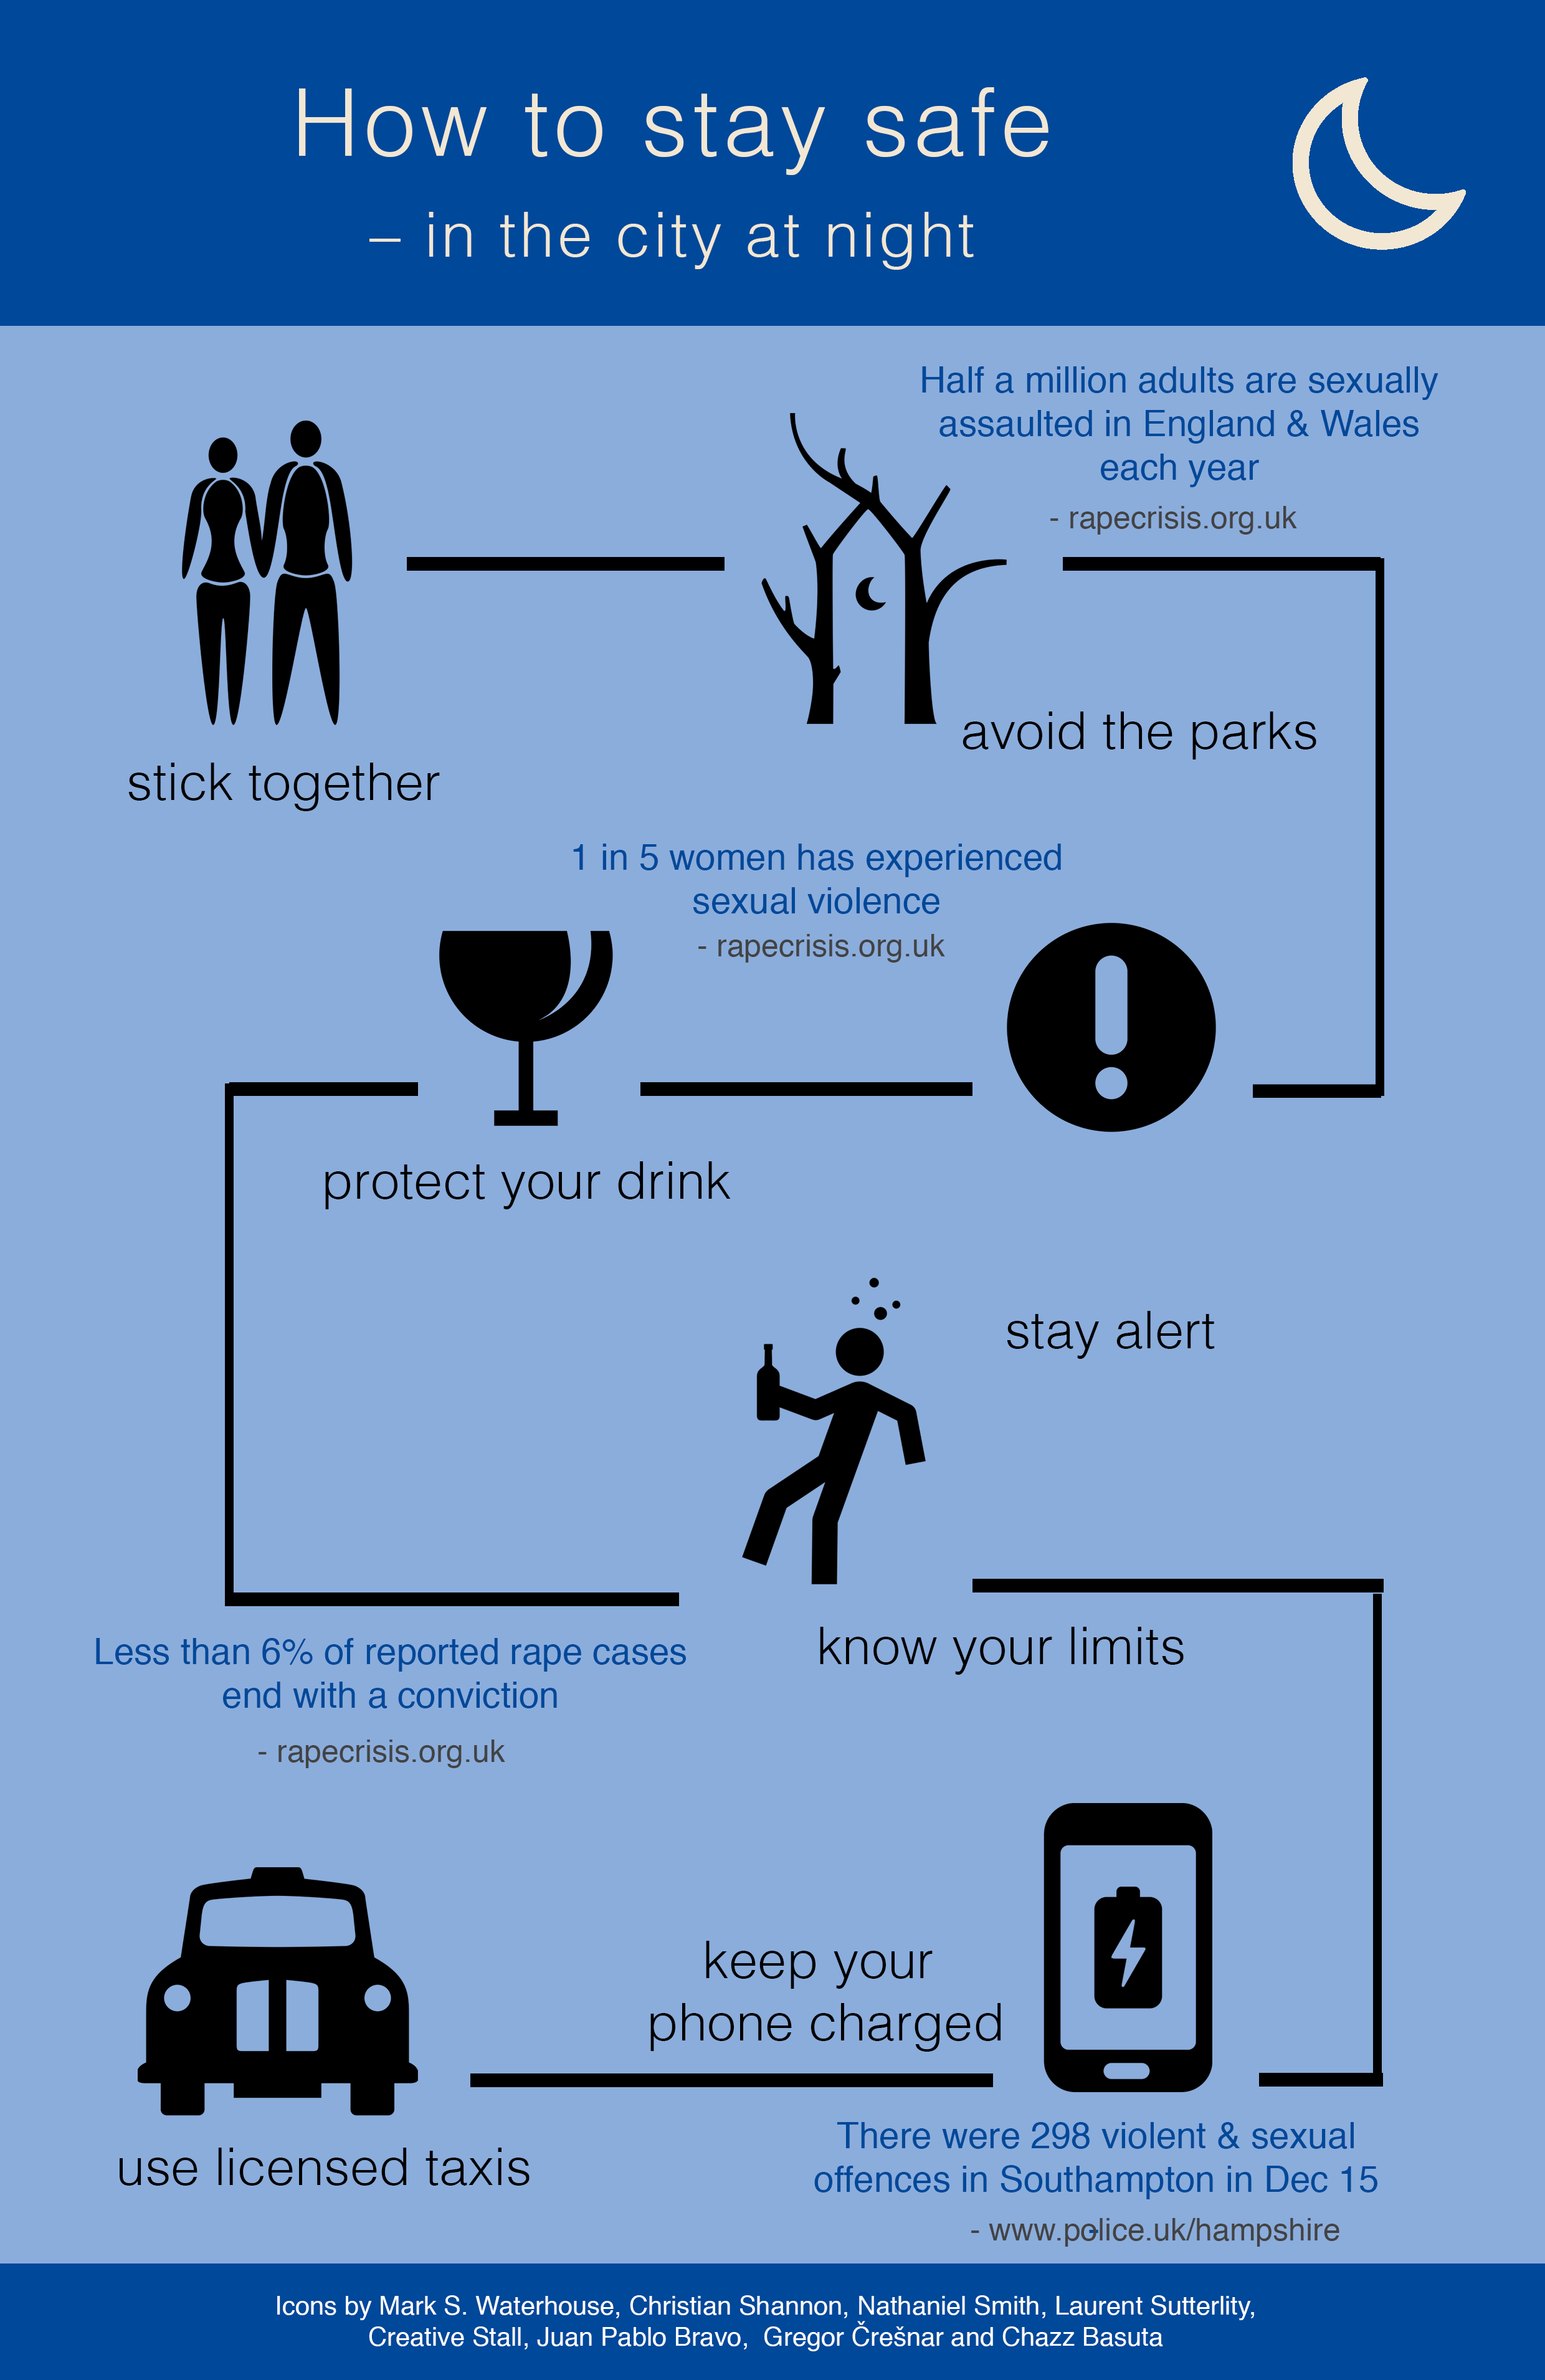 How to stay safe in the city at night